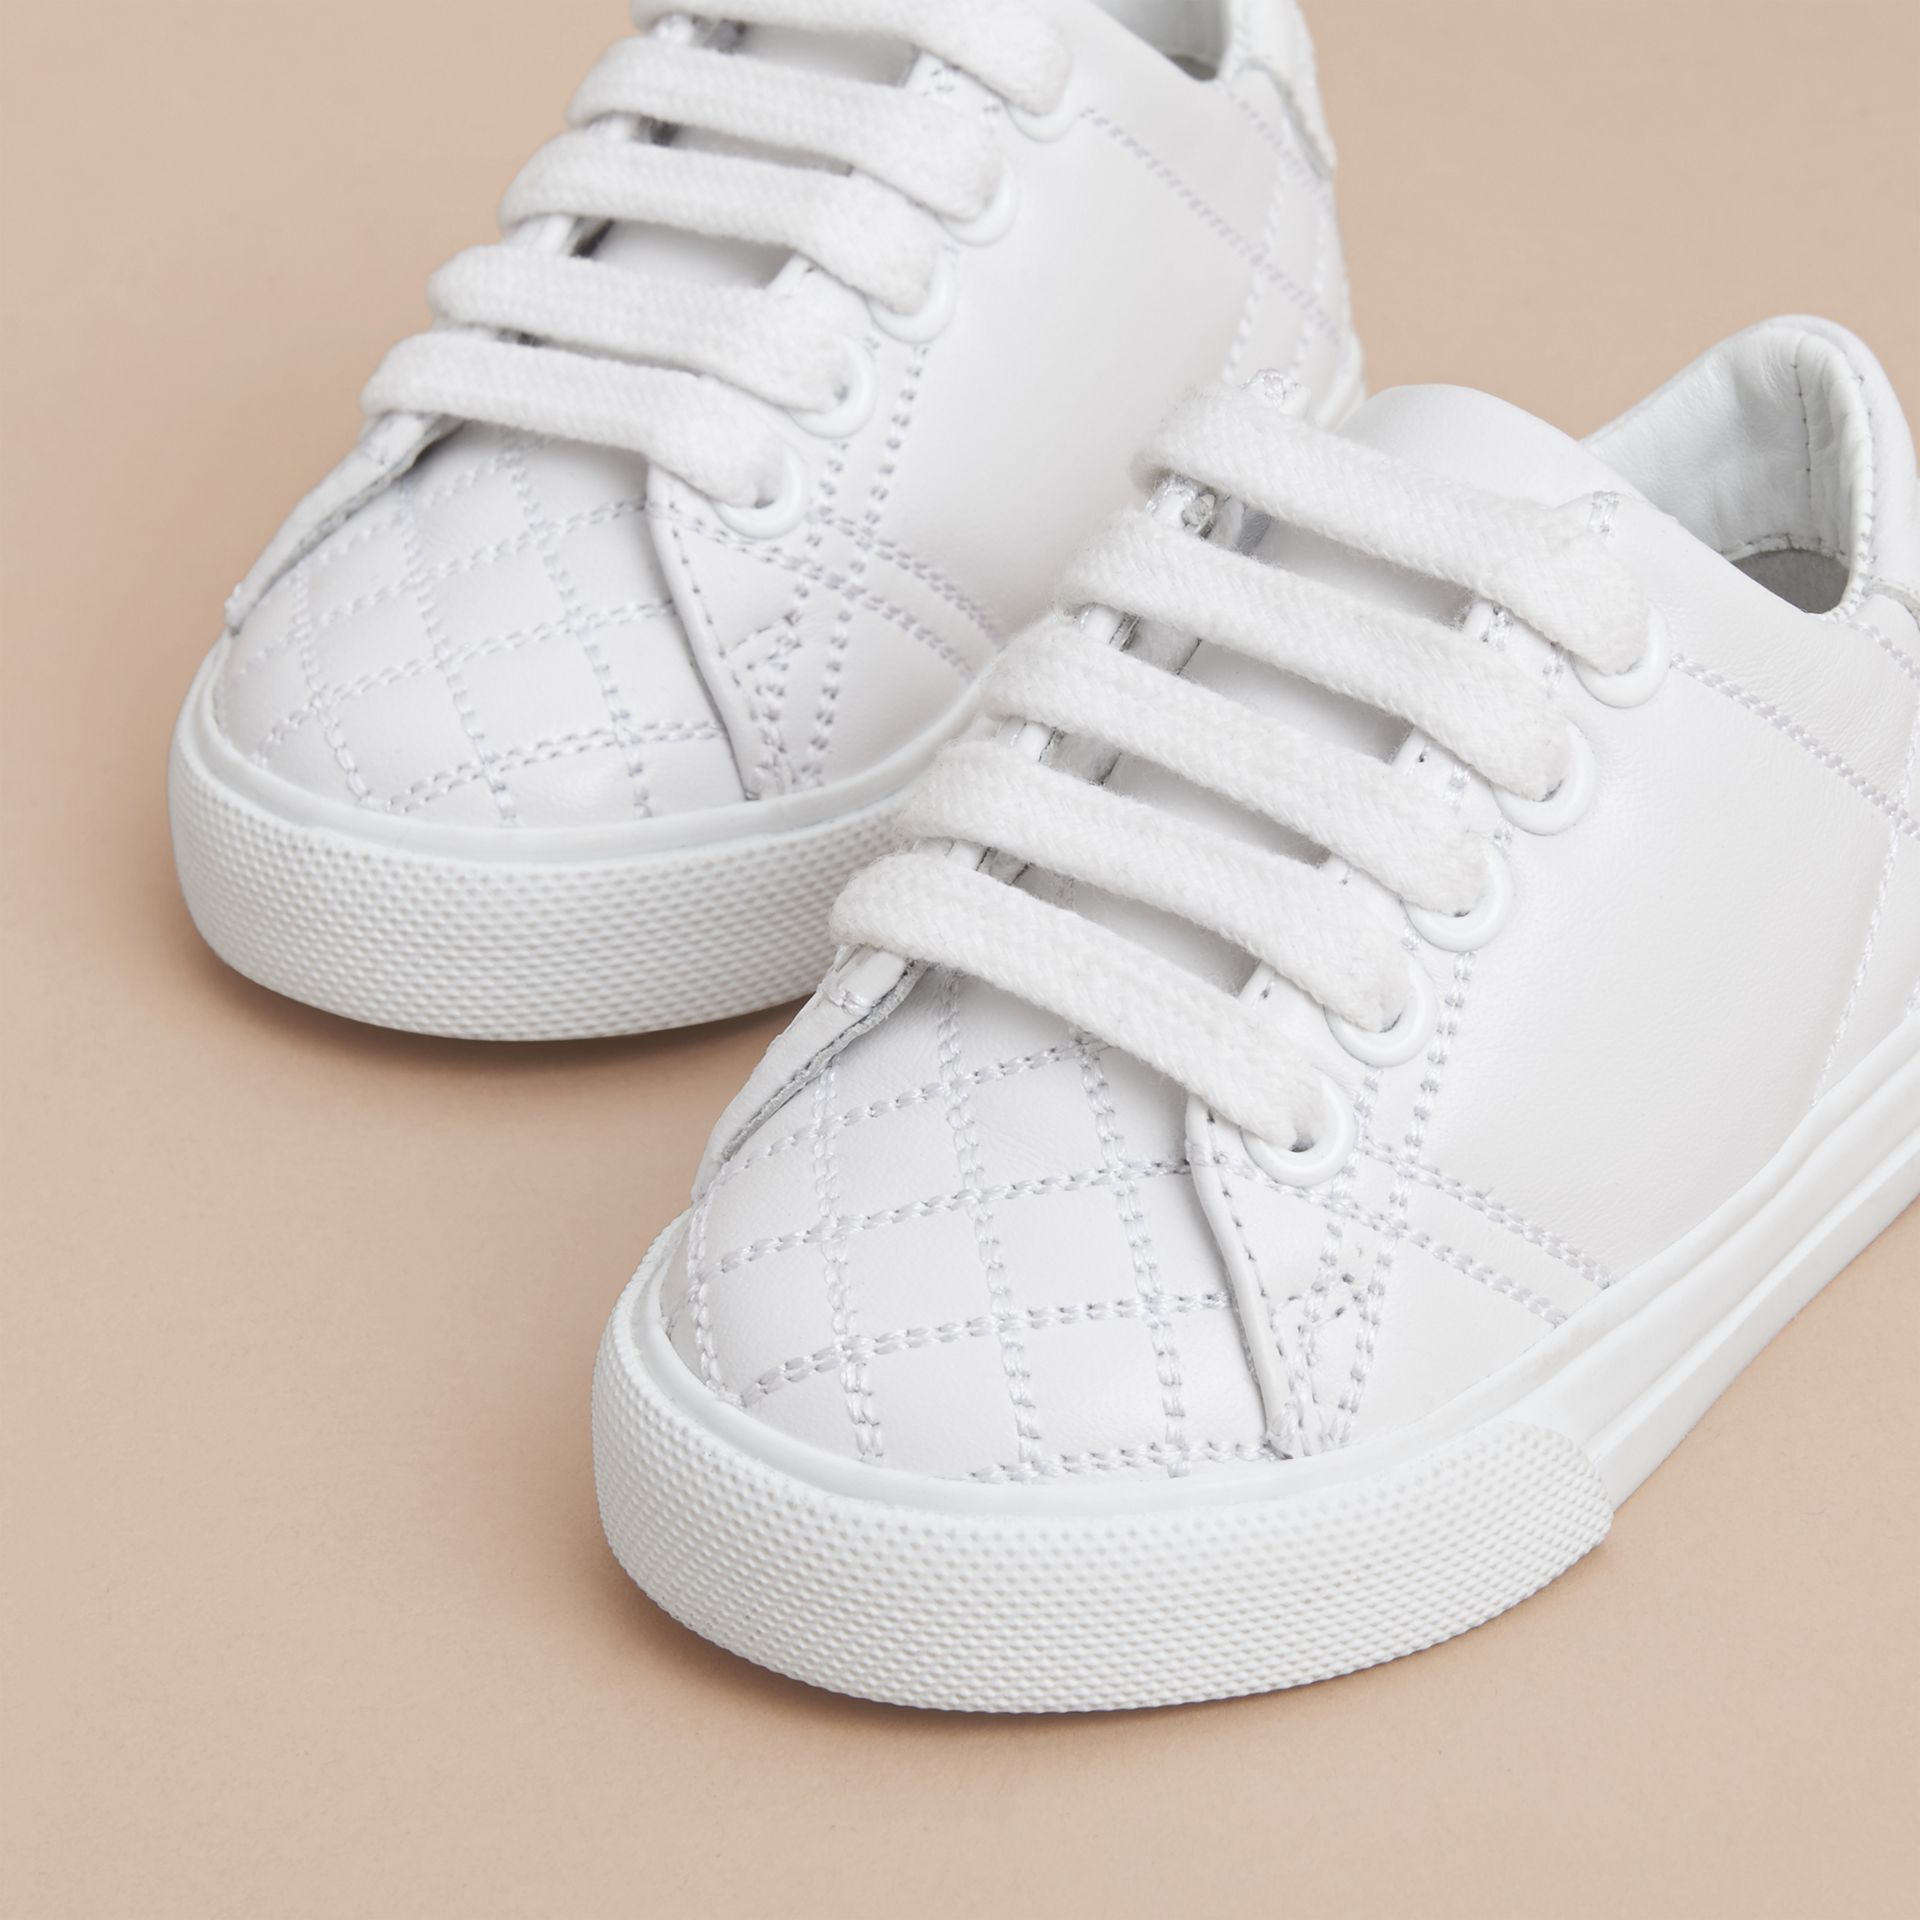 Sneakers en cuir avec ornements check | Burberry - photo de la galerie 3